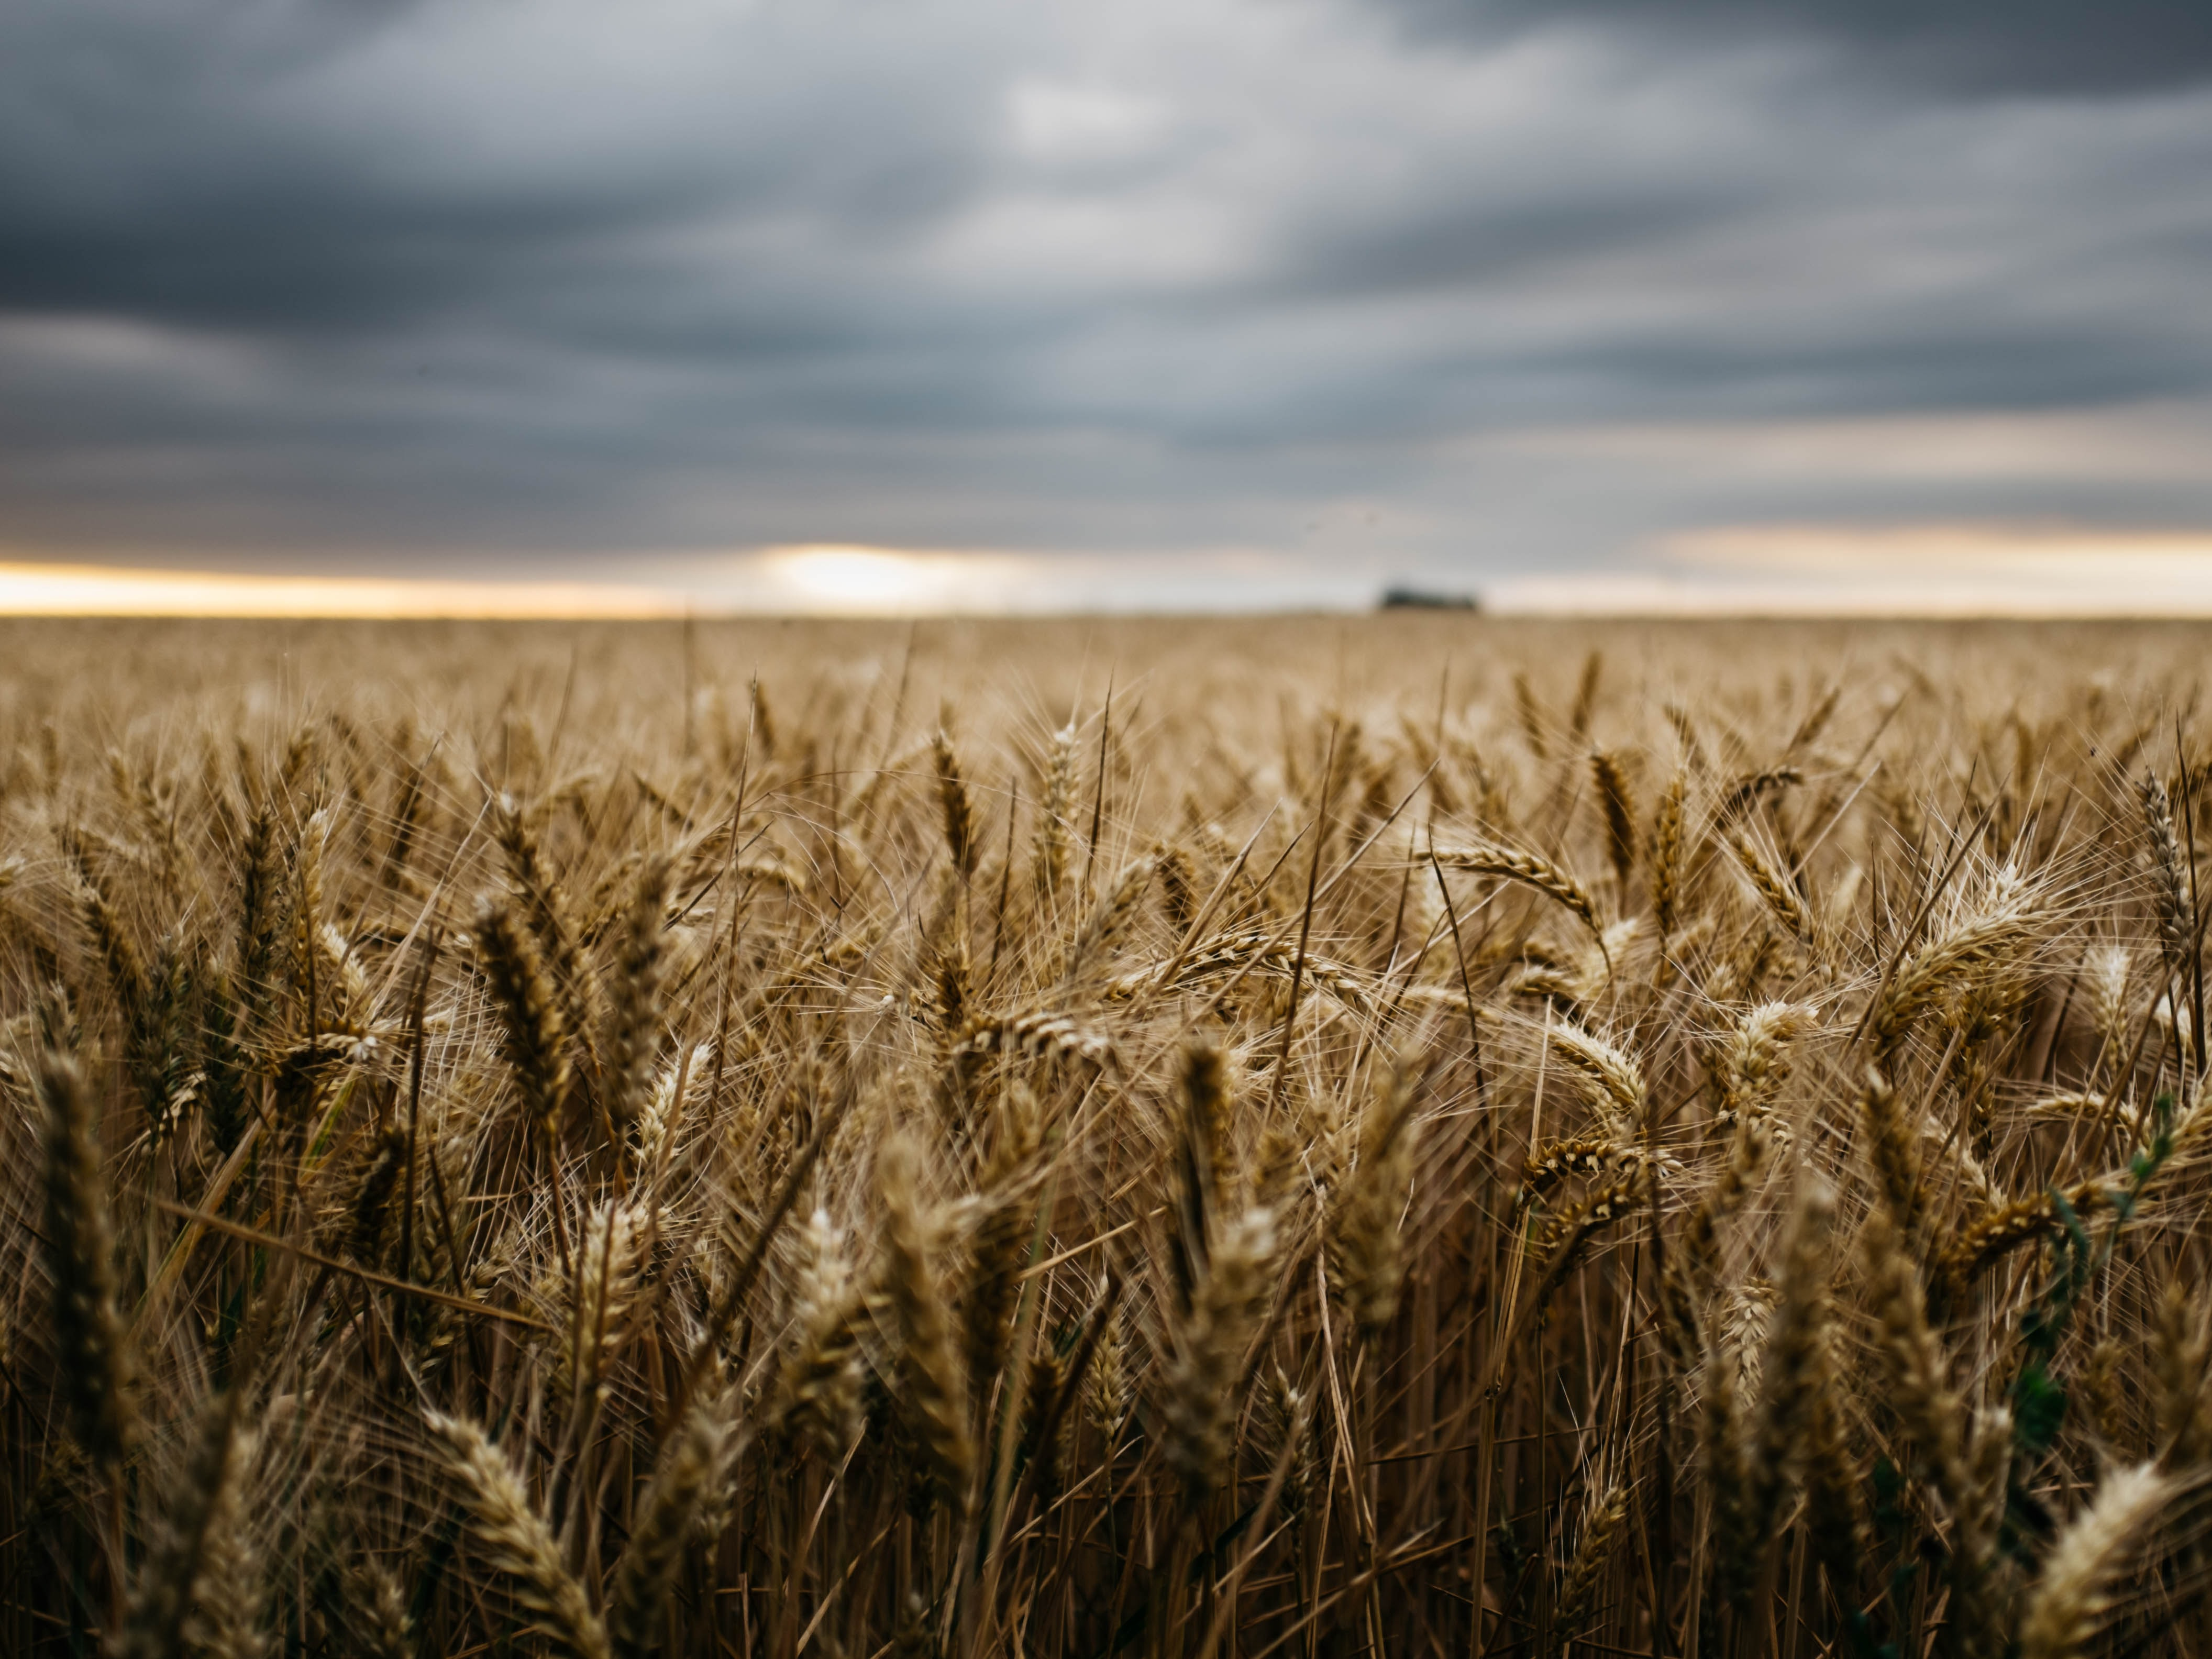 bokeh photography of a wheat field